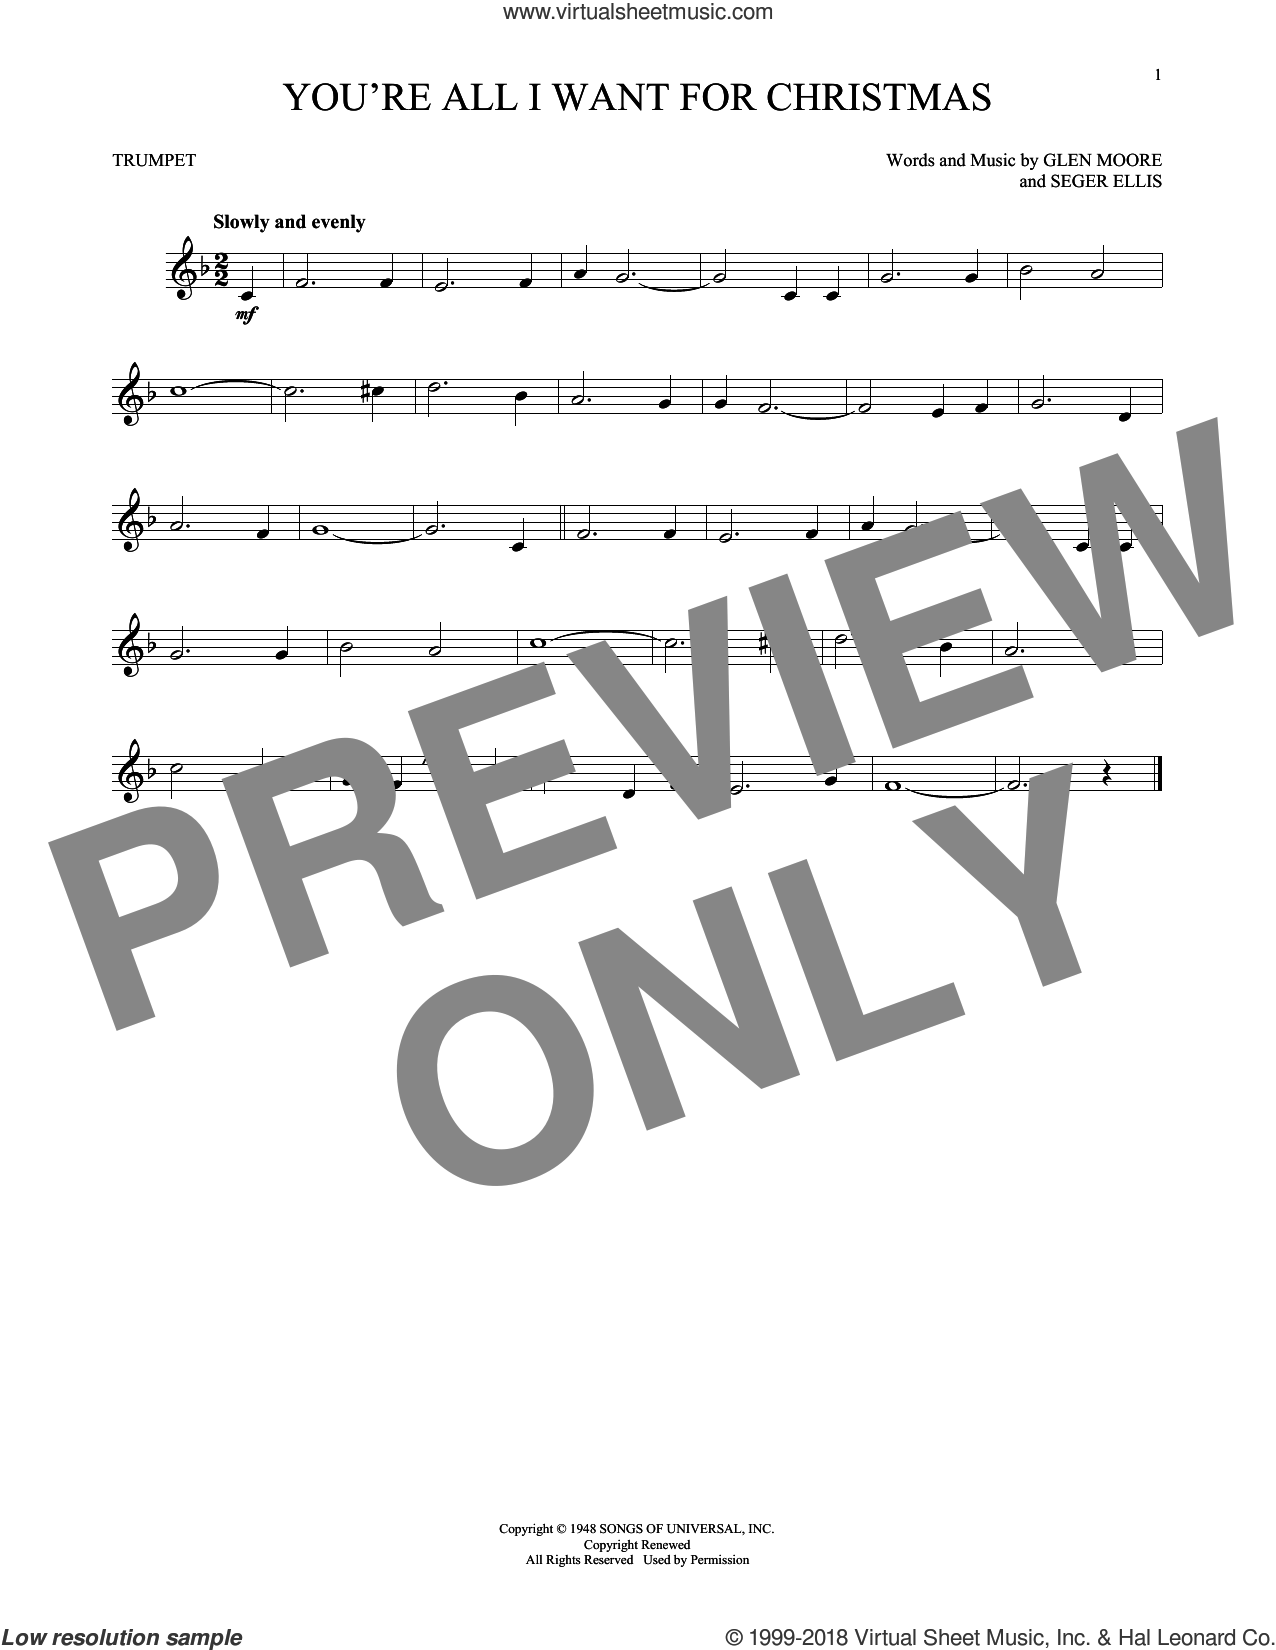 You're All I Want For Christmas sheet music for trumpet solo by Glen Moore, Frank Gallagher, Glen Moore & Seger Ellis and Seger Ellis, intermediate skill level